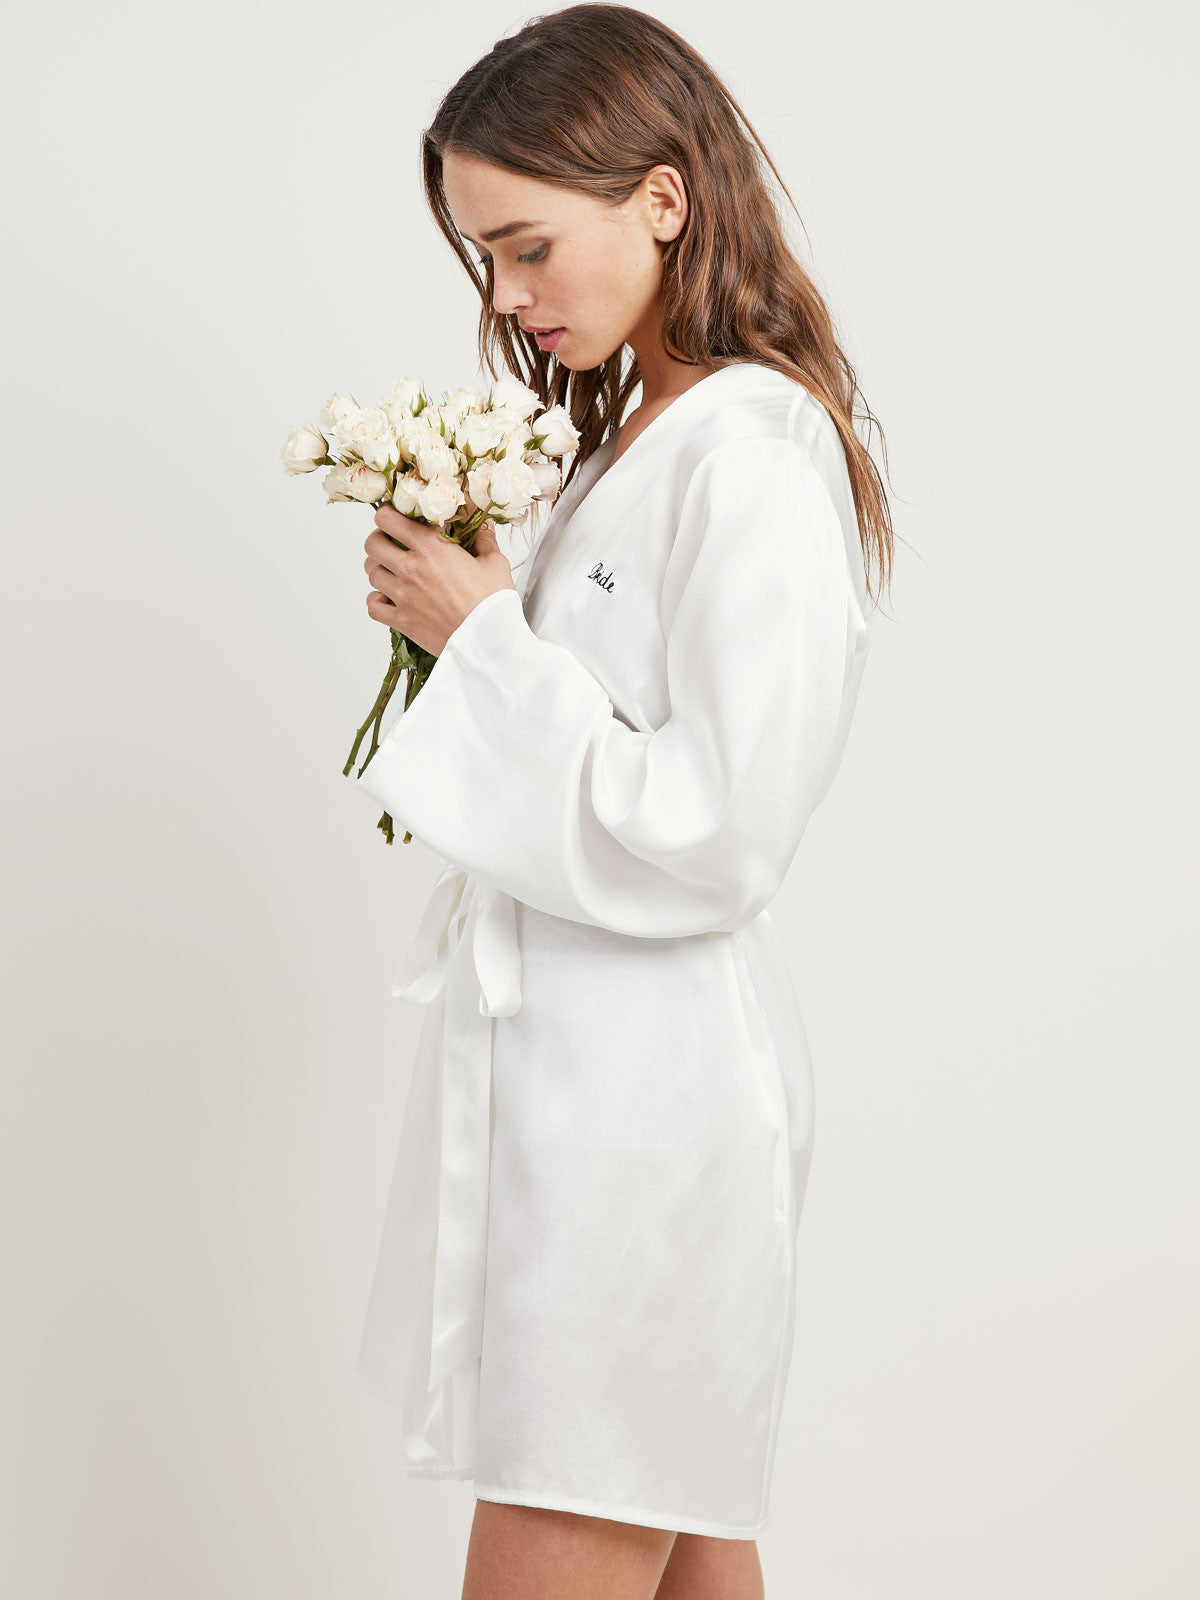 Bride Langley Robe in Chalk By Morgan Lane